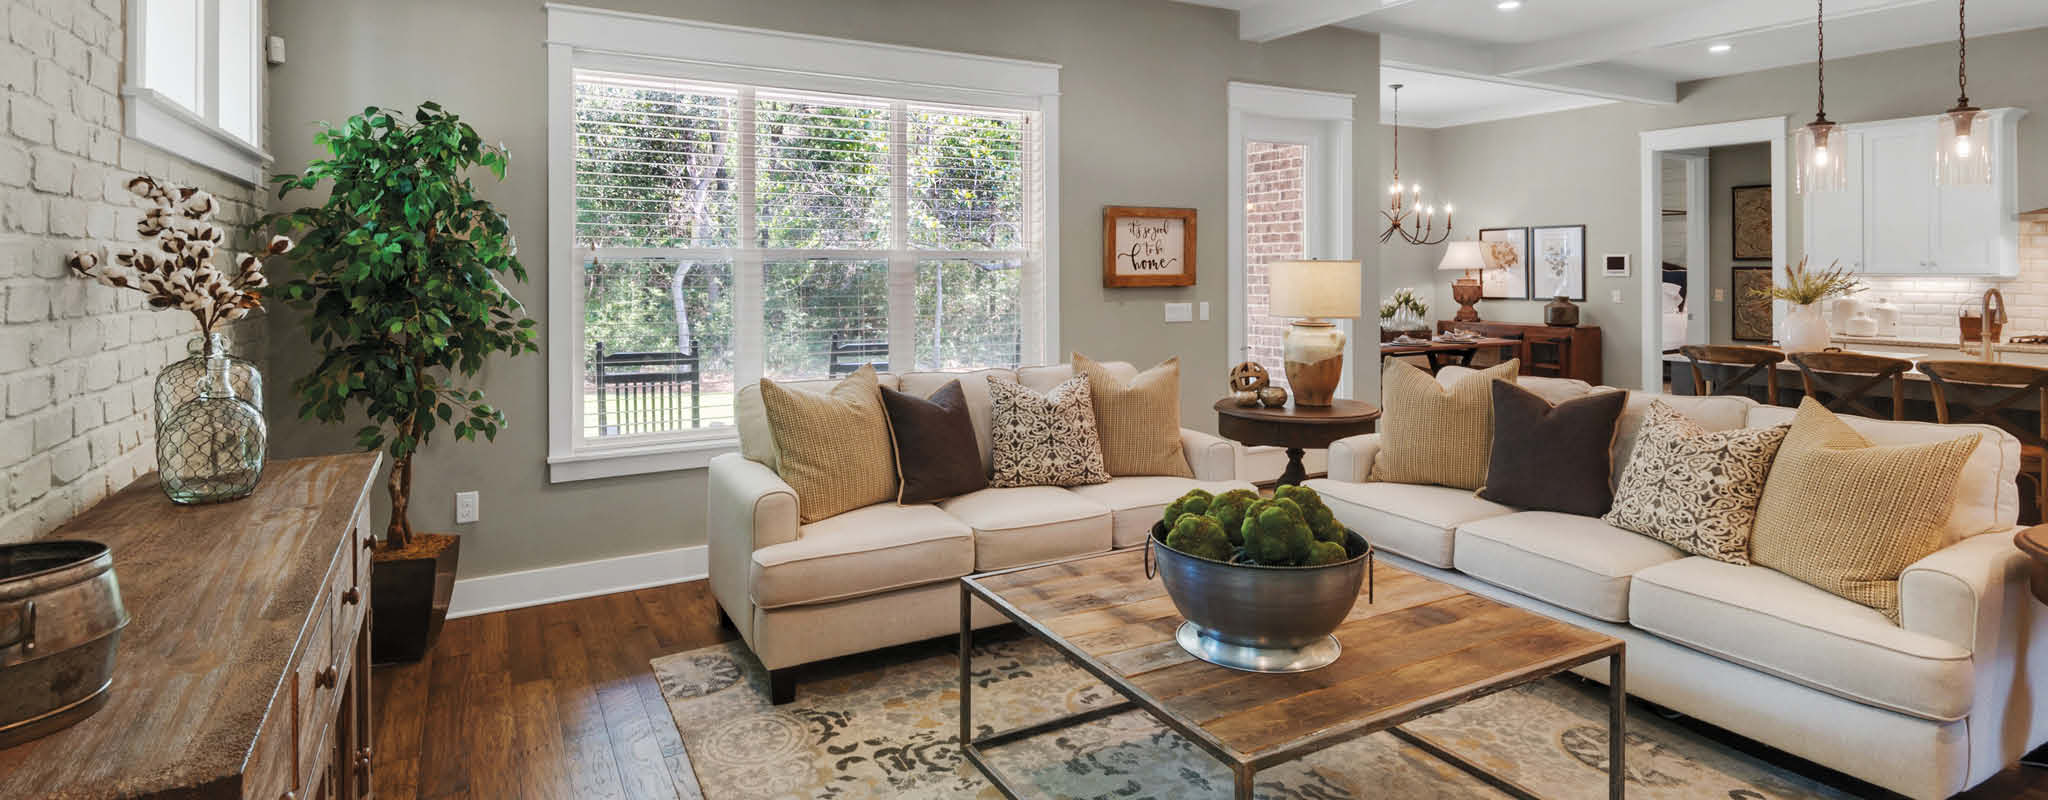 Open Living Space in Water's Edge in Niceville